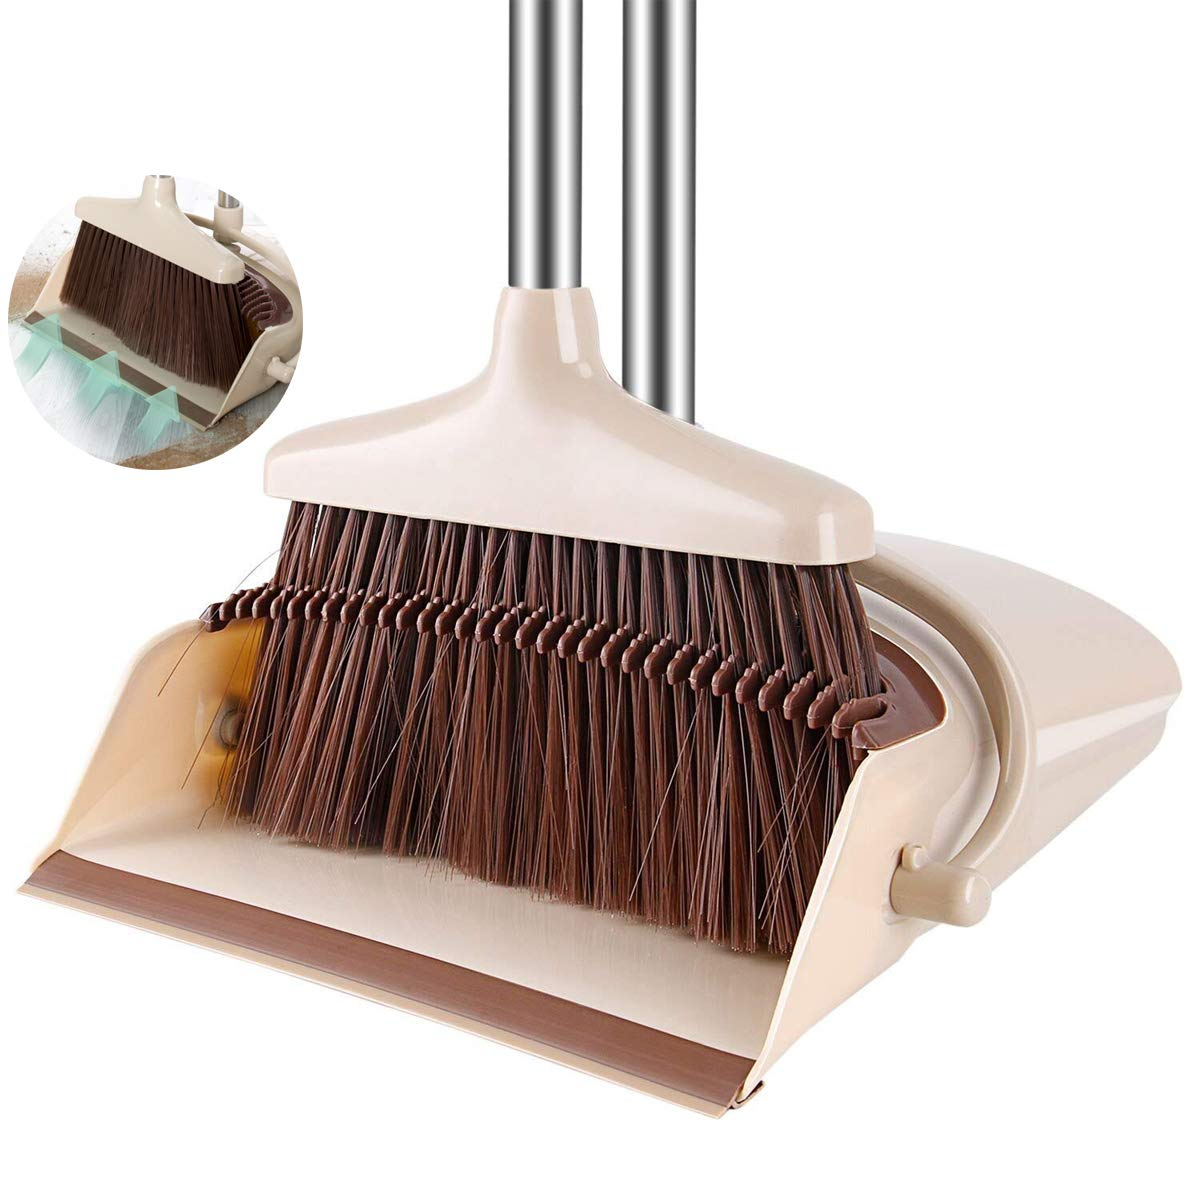 comfortableplus Broom and Dustpan Set, Broom with Dust Pan with Long Handle Combo Set for Office and Home Standing Upright Sweep